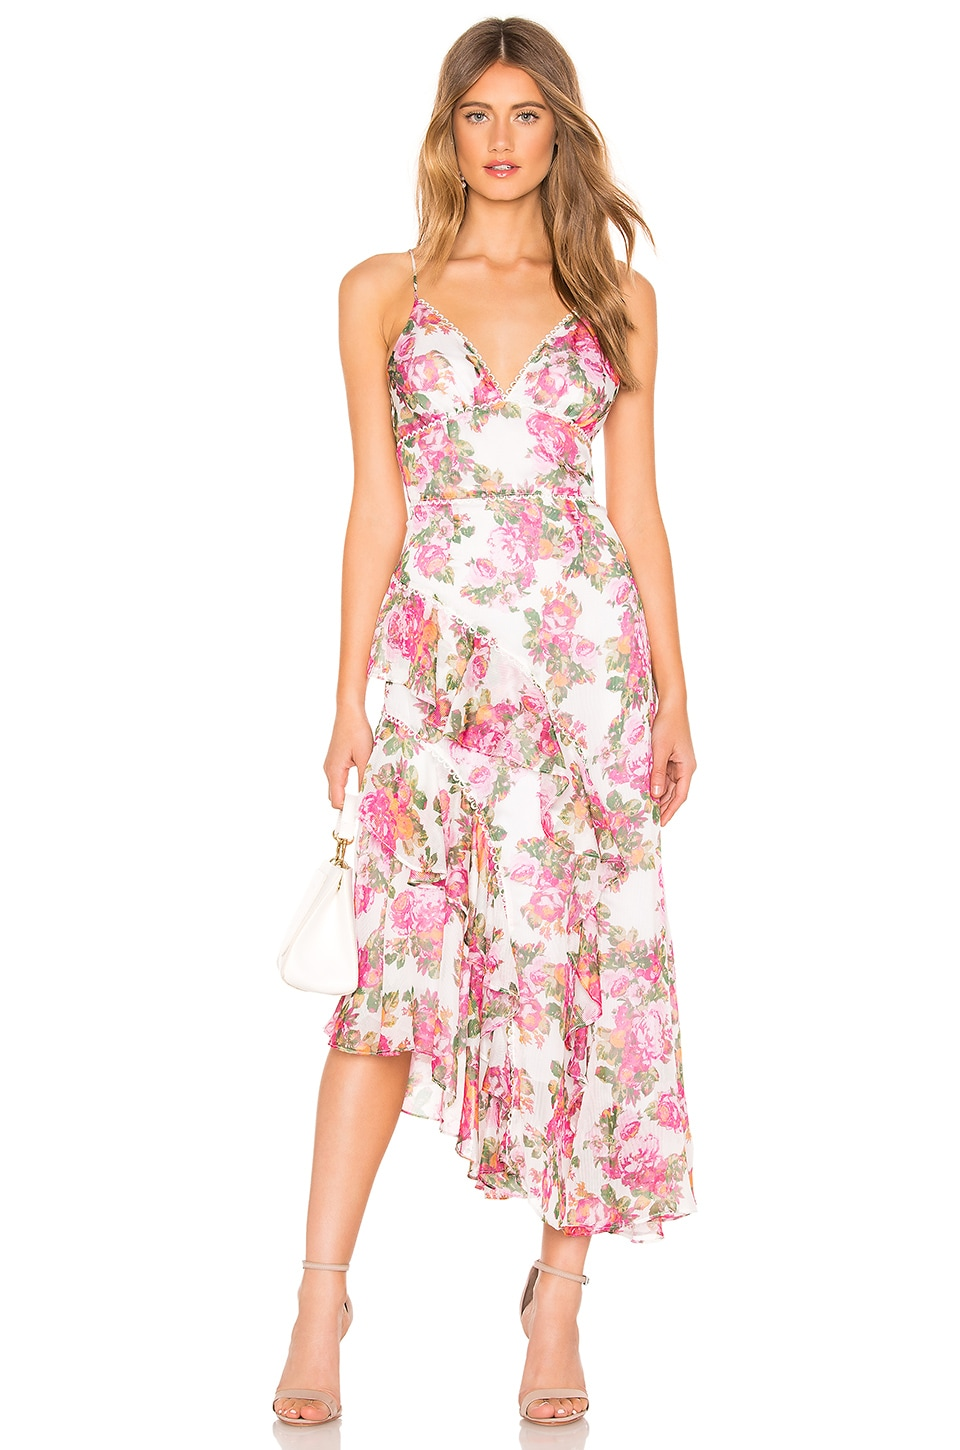 keepsake Oblivion Midi Dress in Ivory Rose Floral